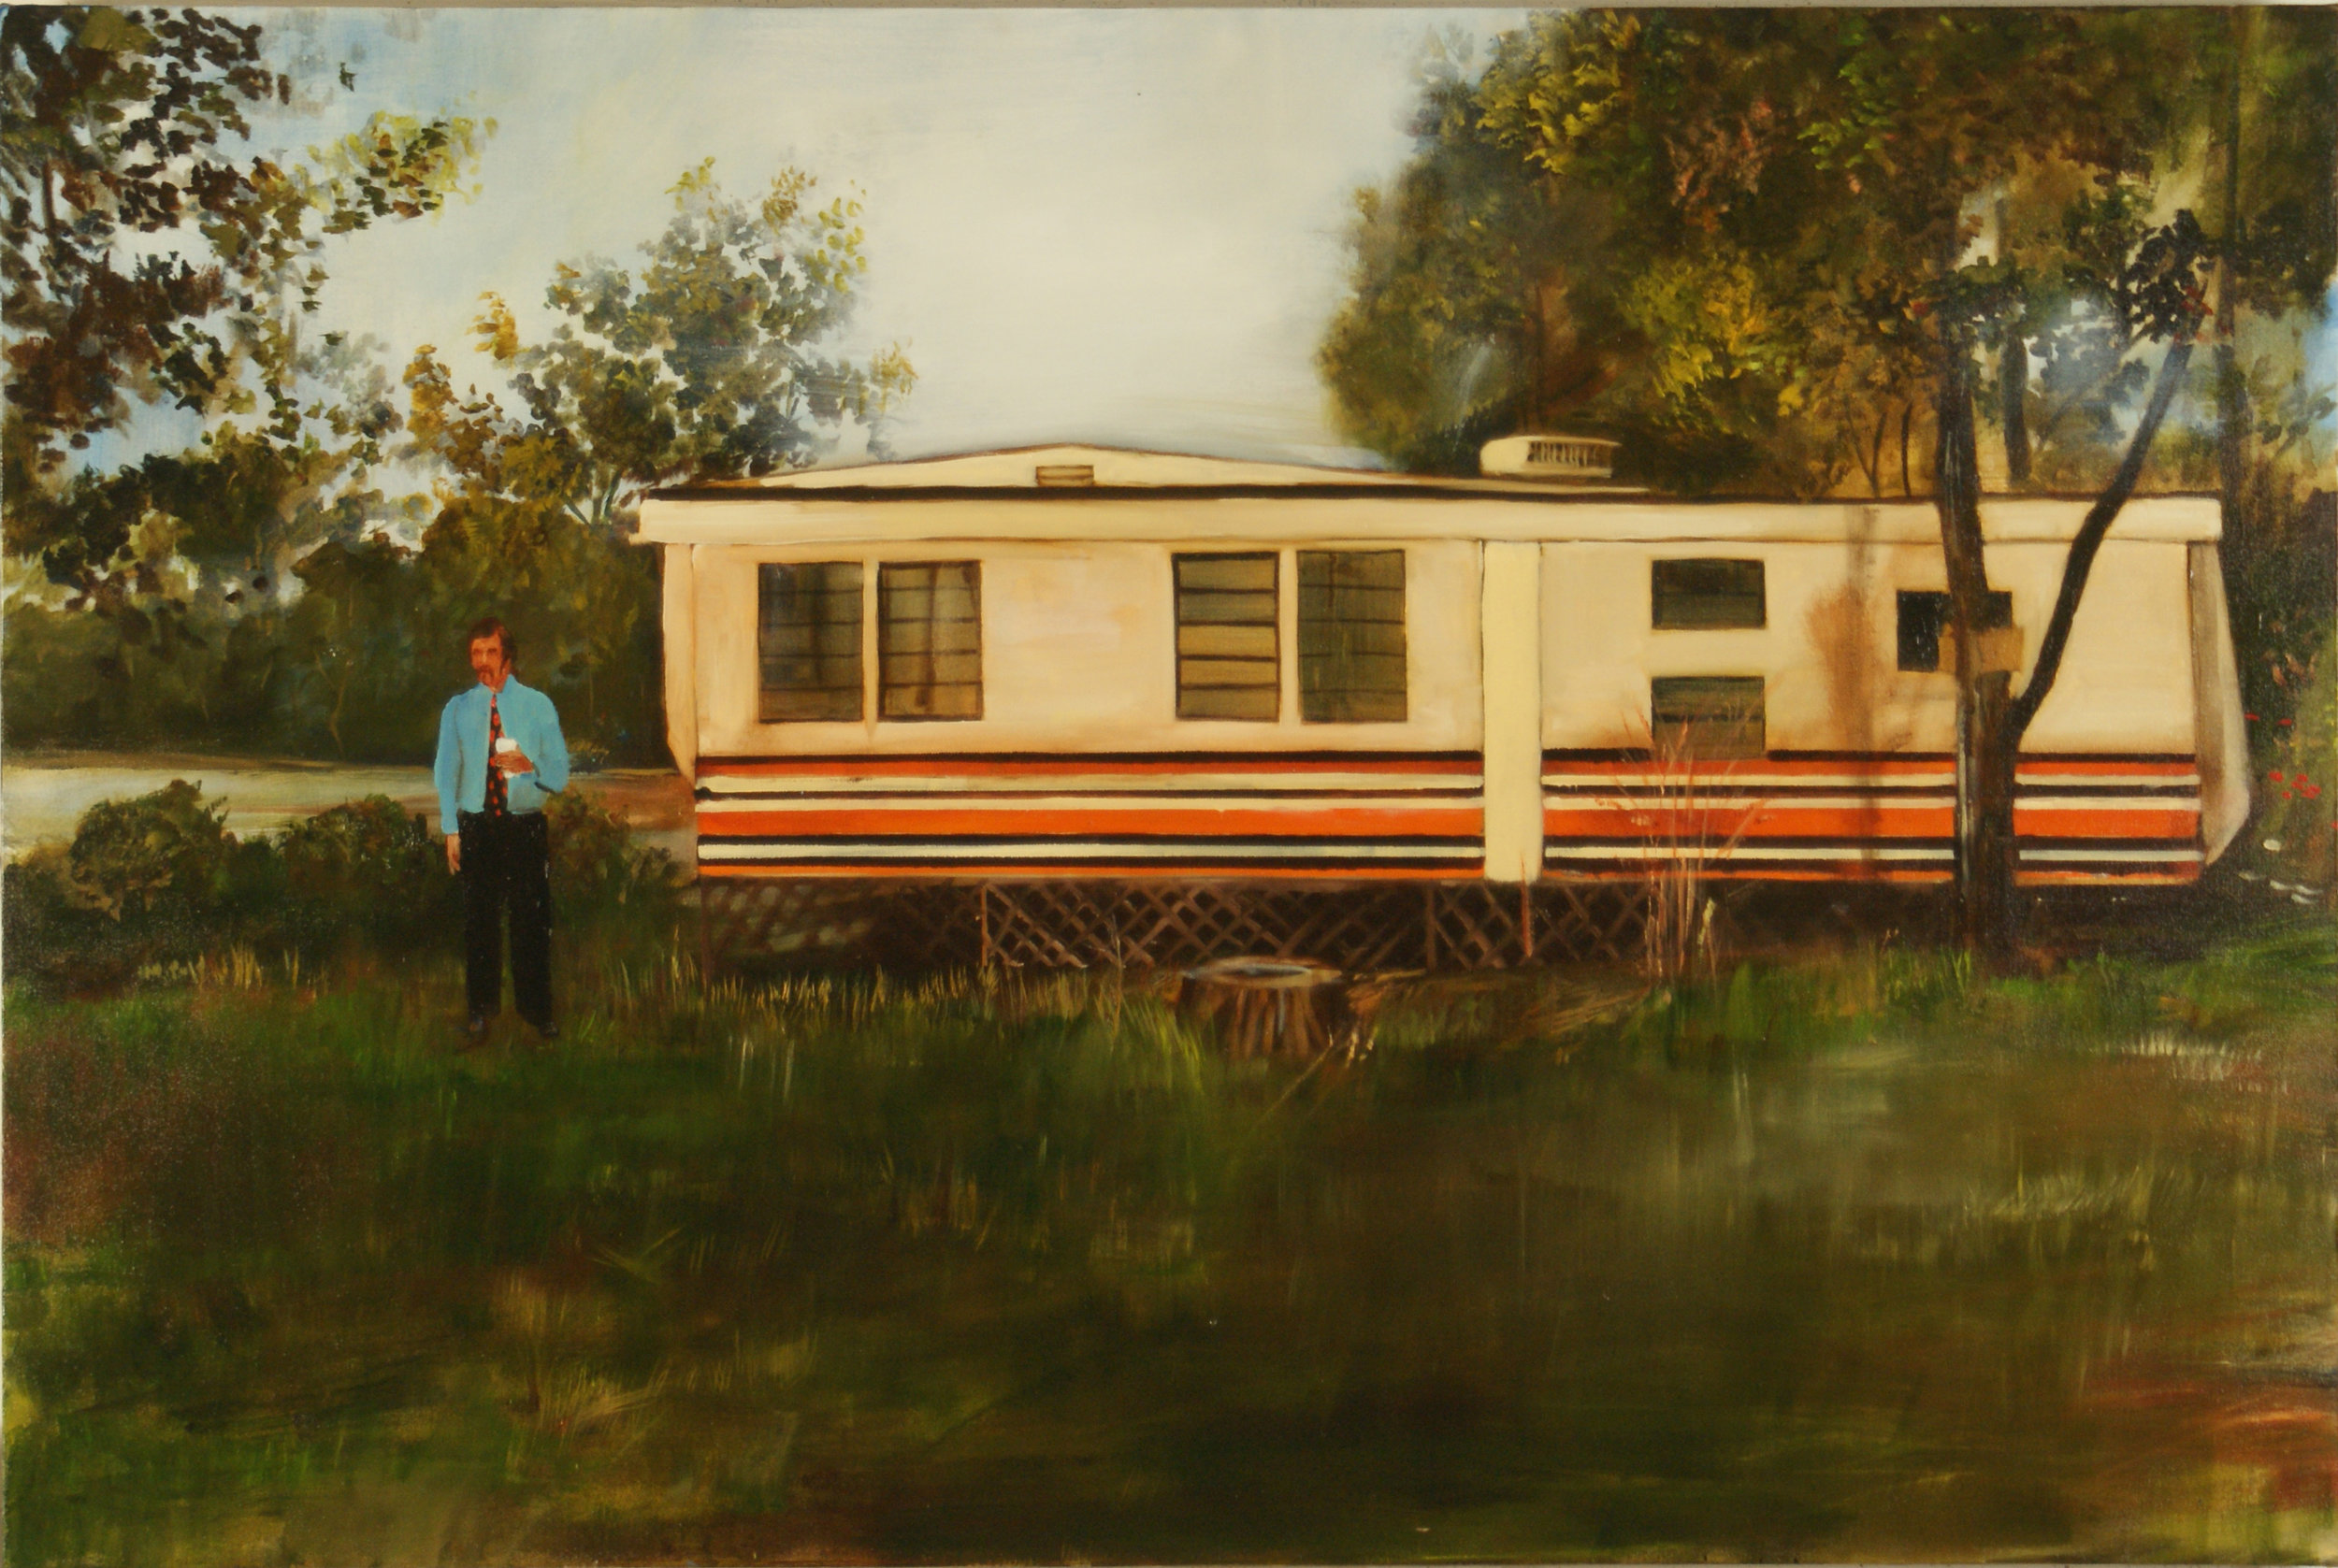 "Trailer with Orange Stripes,  2011, 40"" x 60"", Oil on Canvas on Panel"